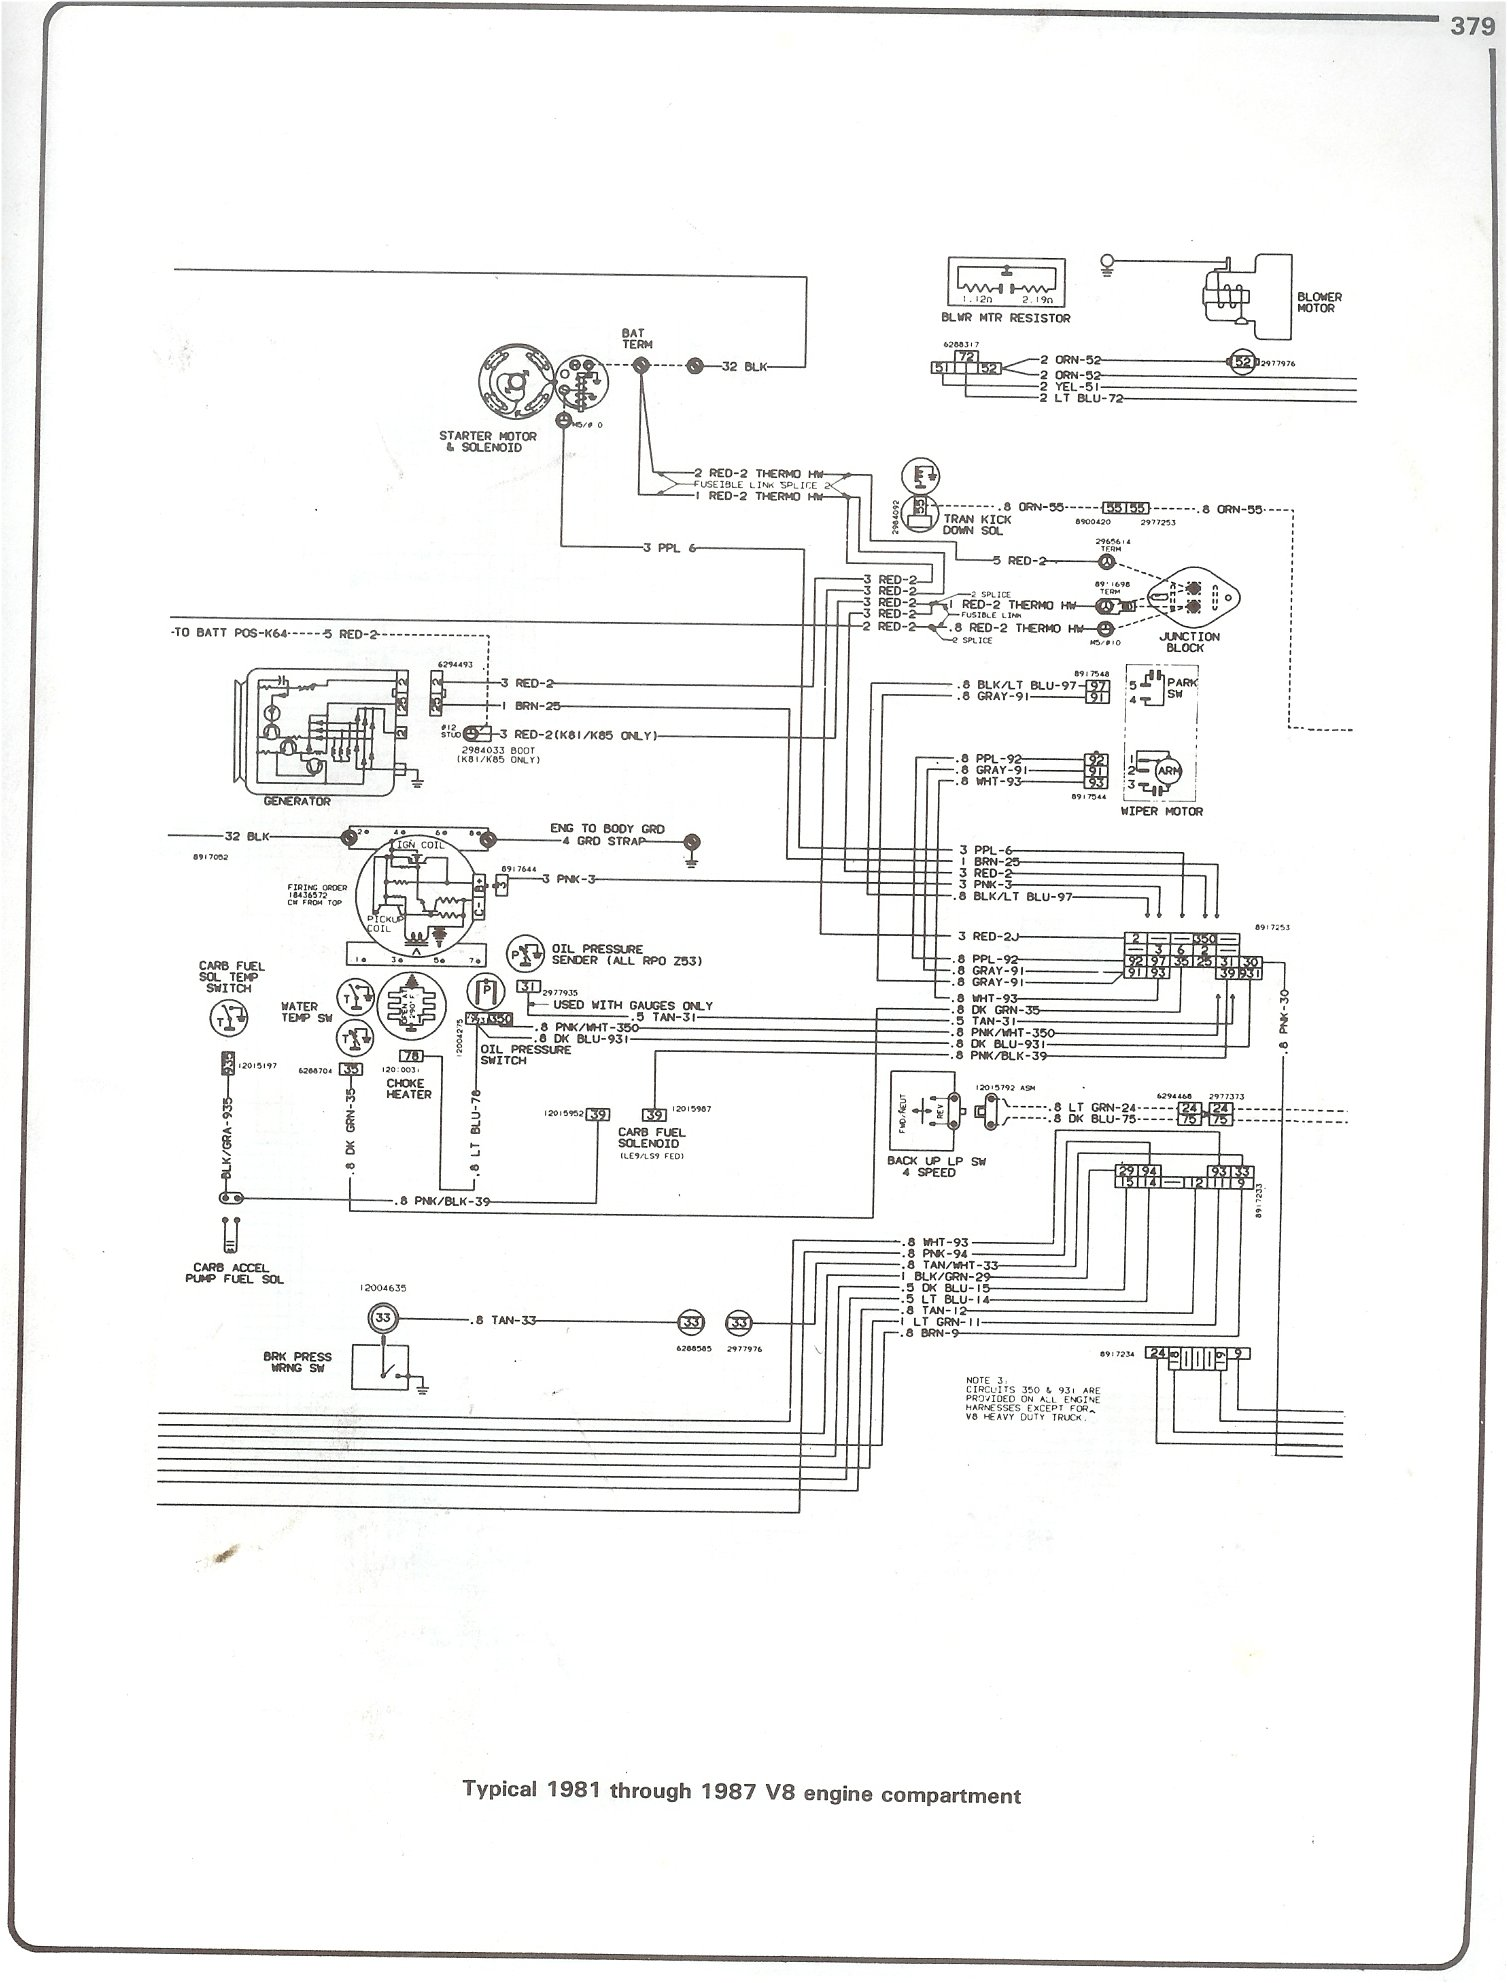 hight resolution of 73 87 c10 wiring harness wiring diagram yer87 chevy truck wire harness wiring diagram imp 73